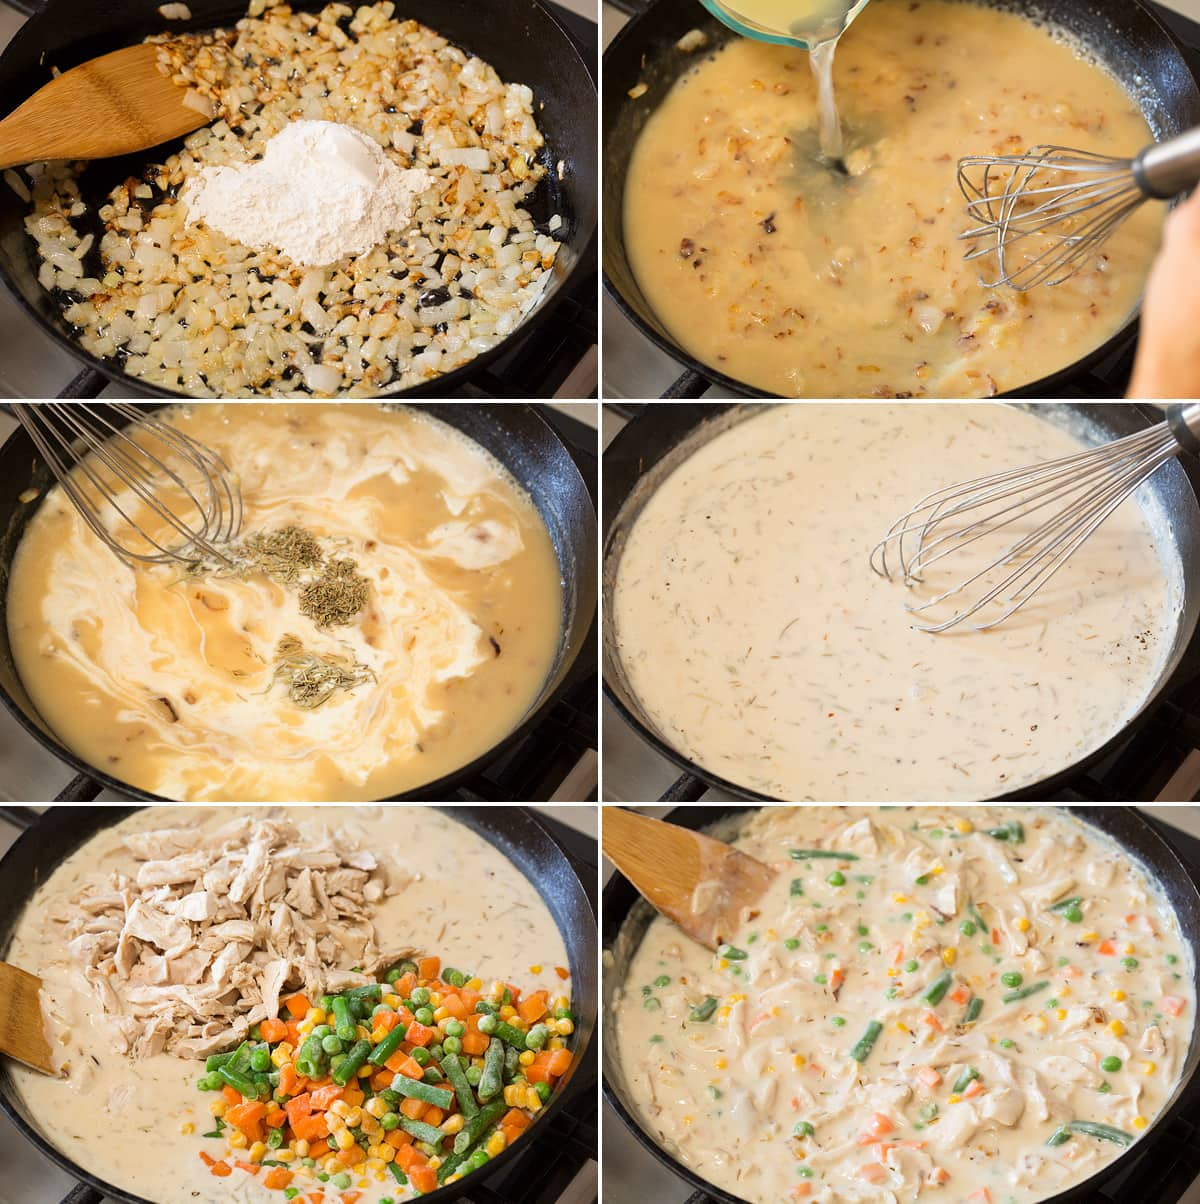 Collage of six images showing steps of making chicken pot pie filling in a cast iron skillet.